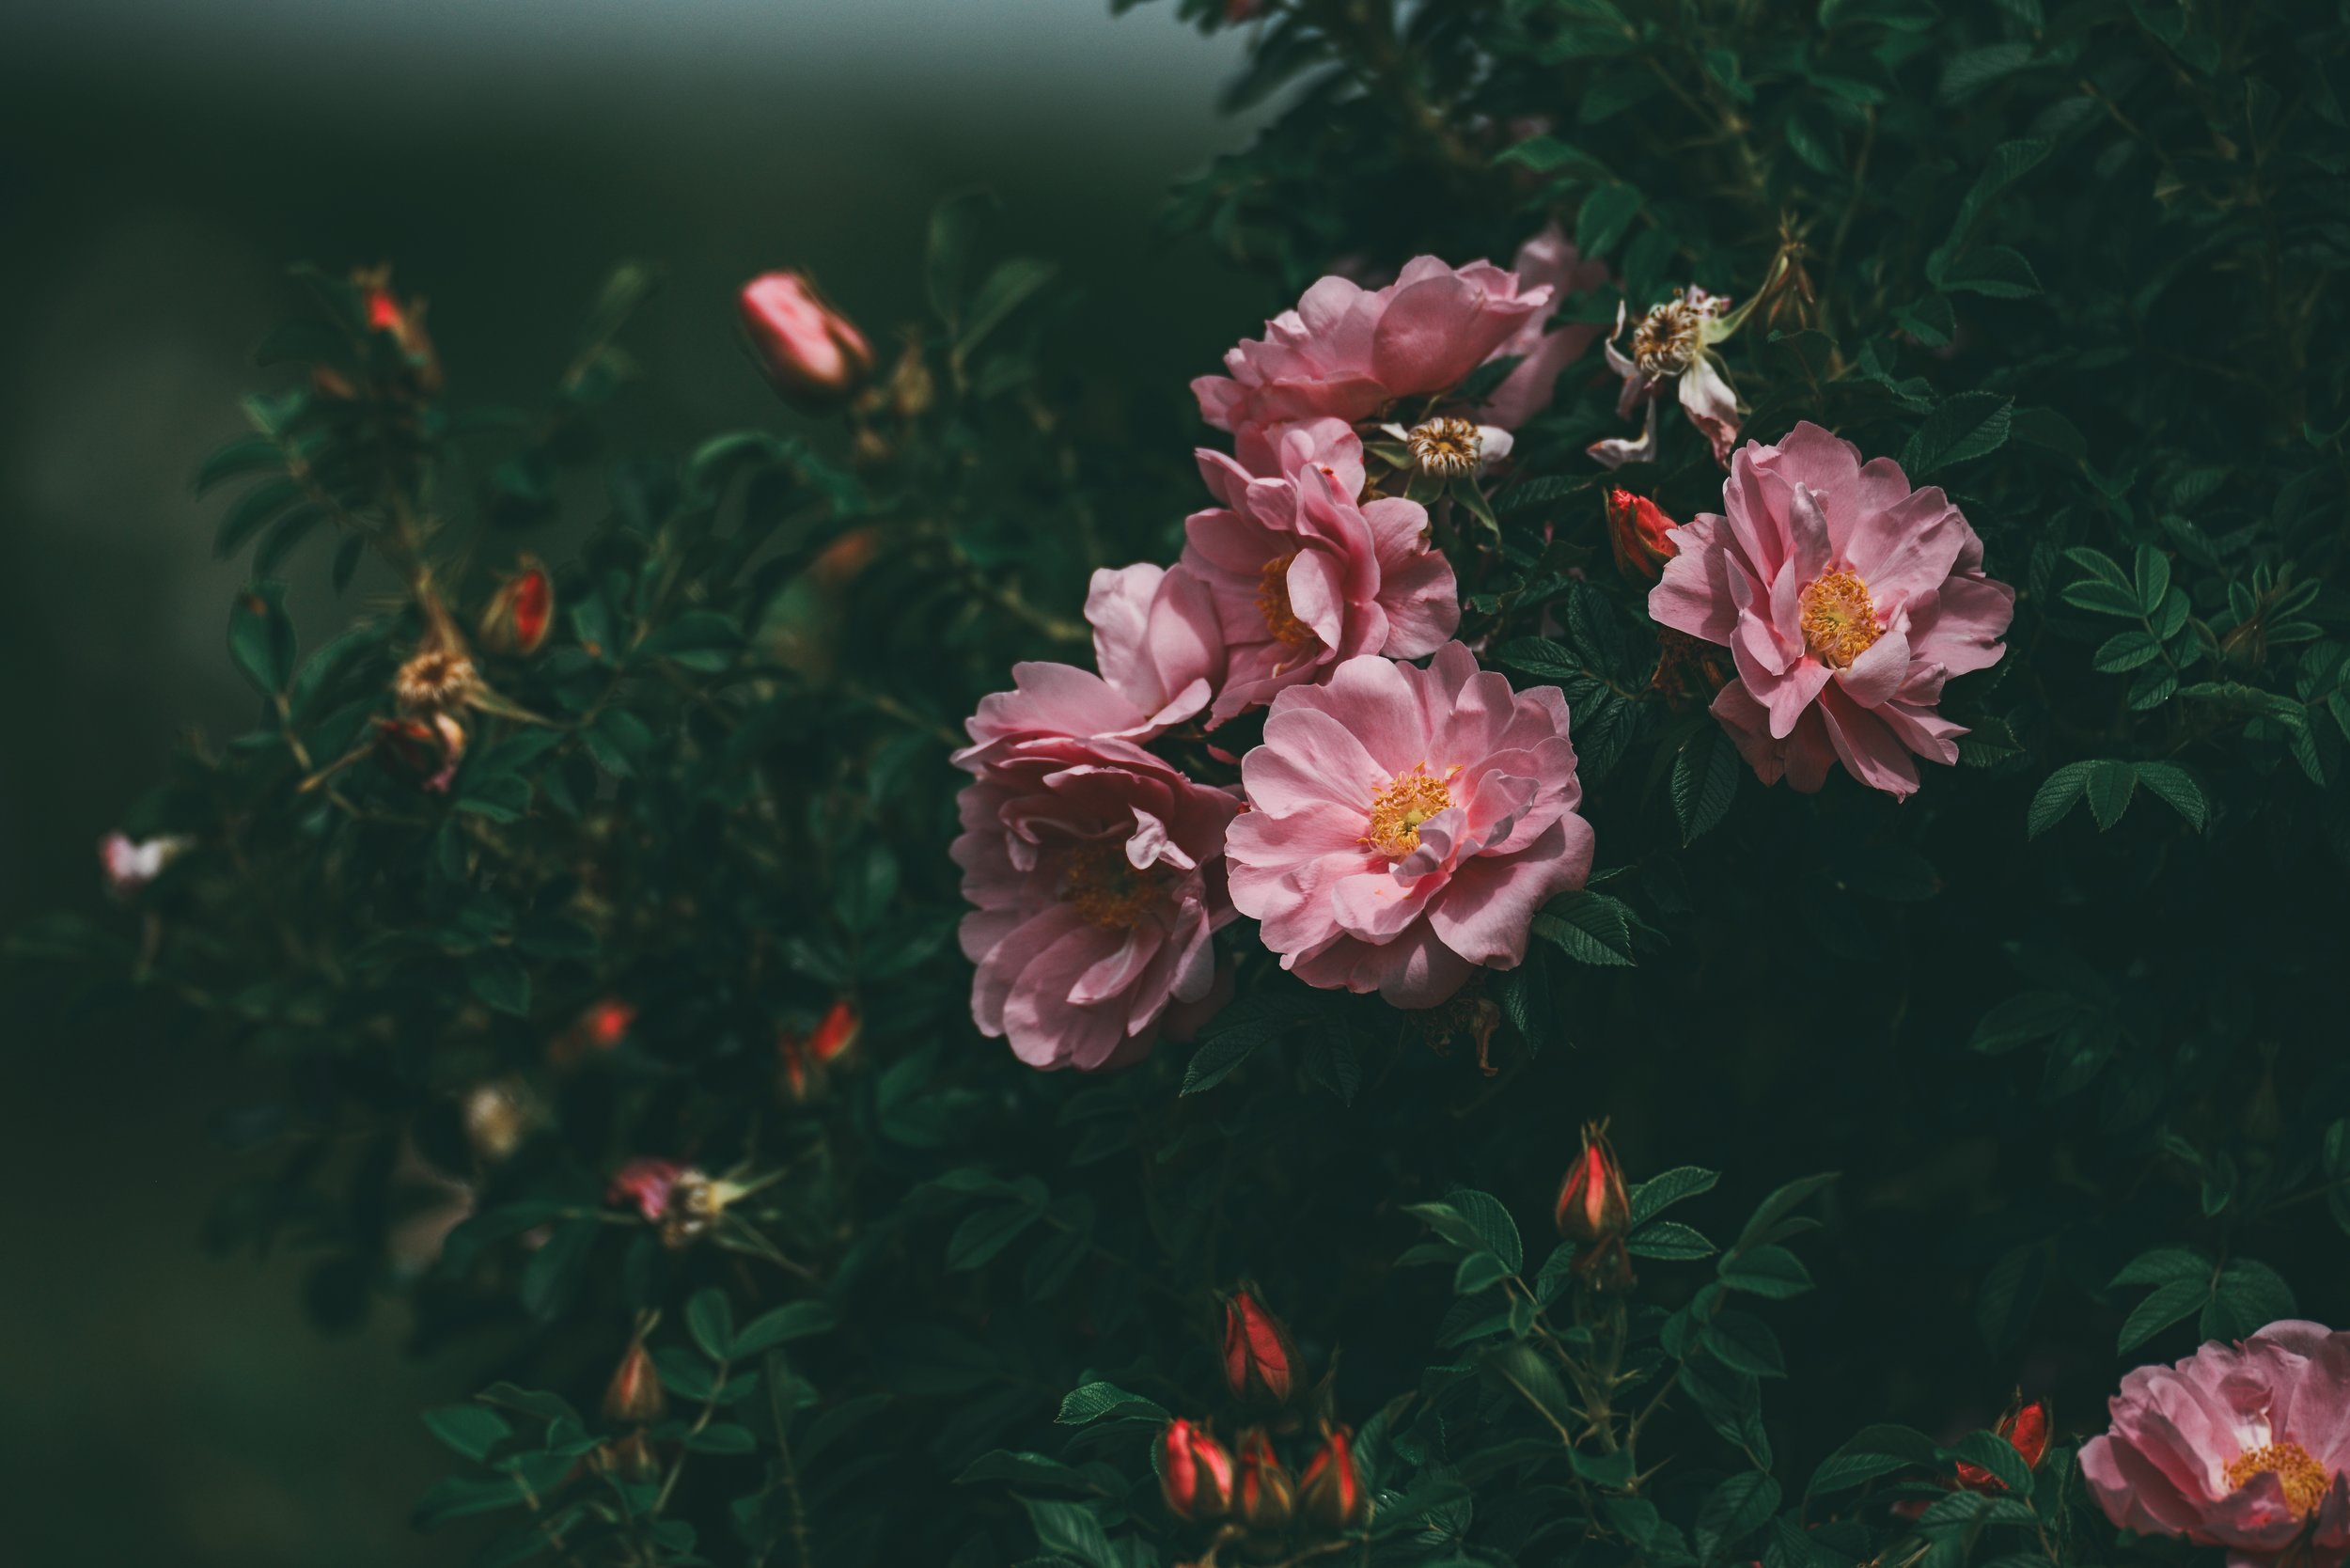 Pink flowers in a dark green forest.